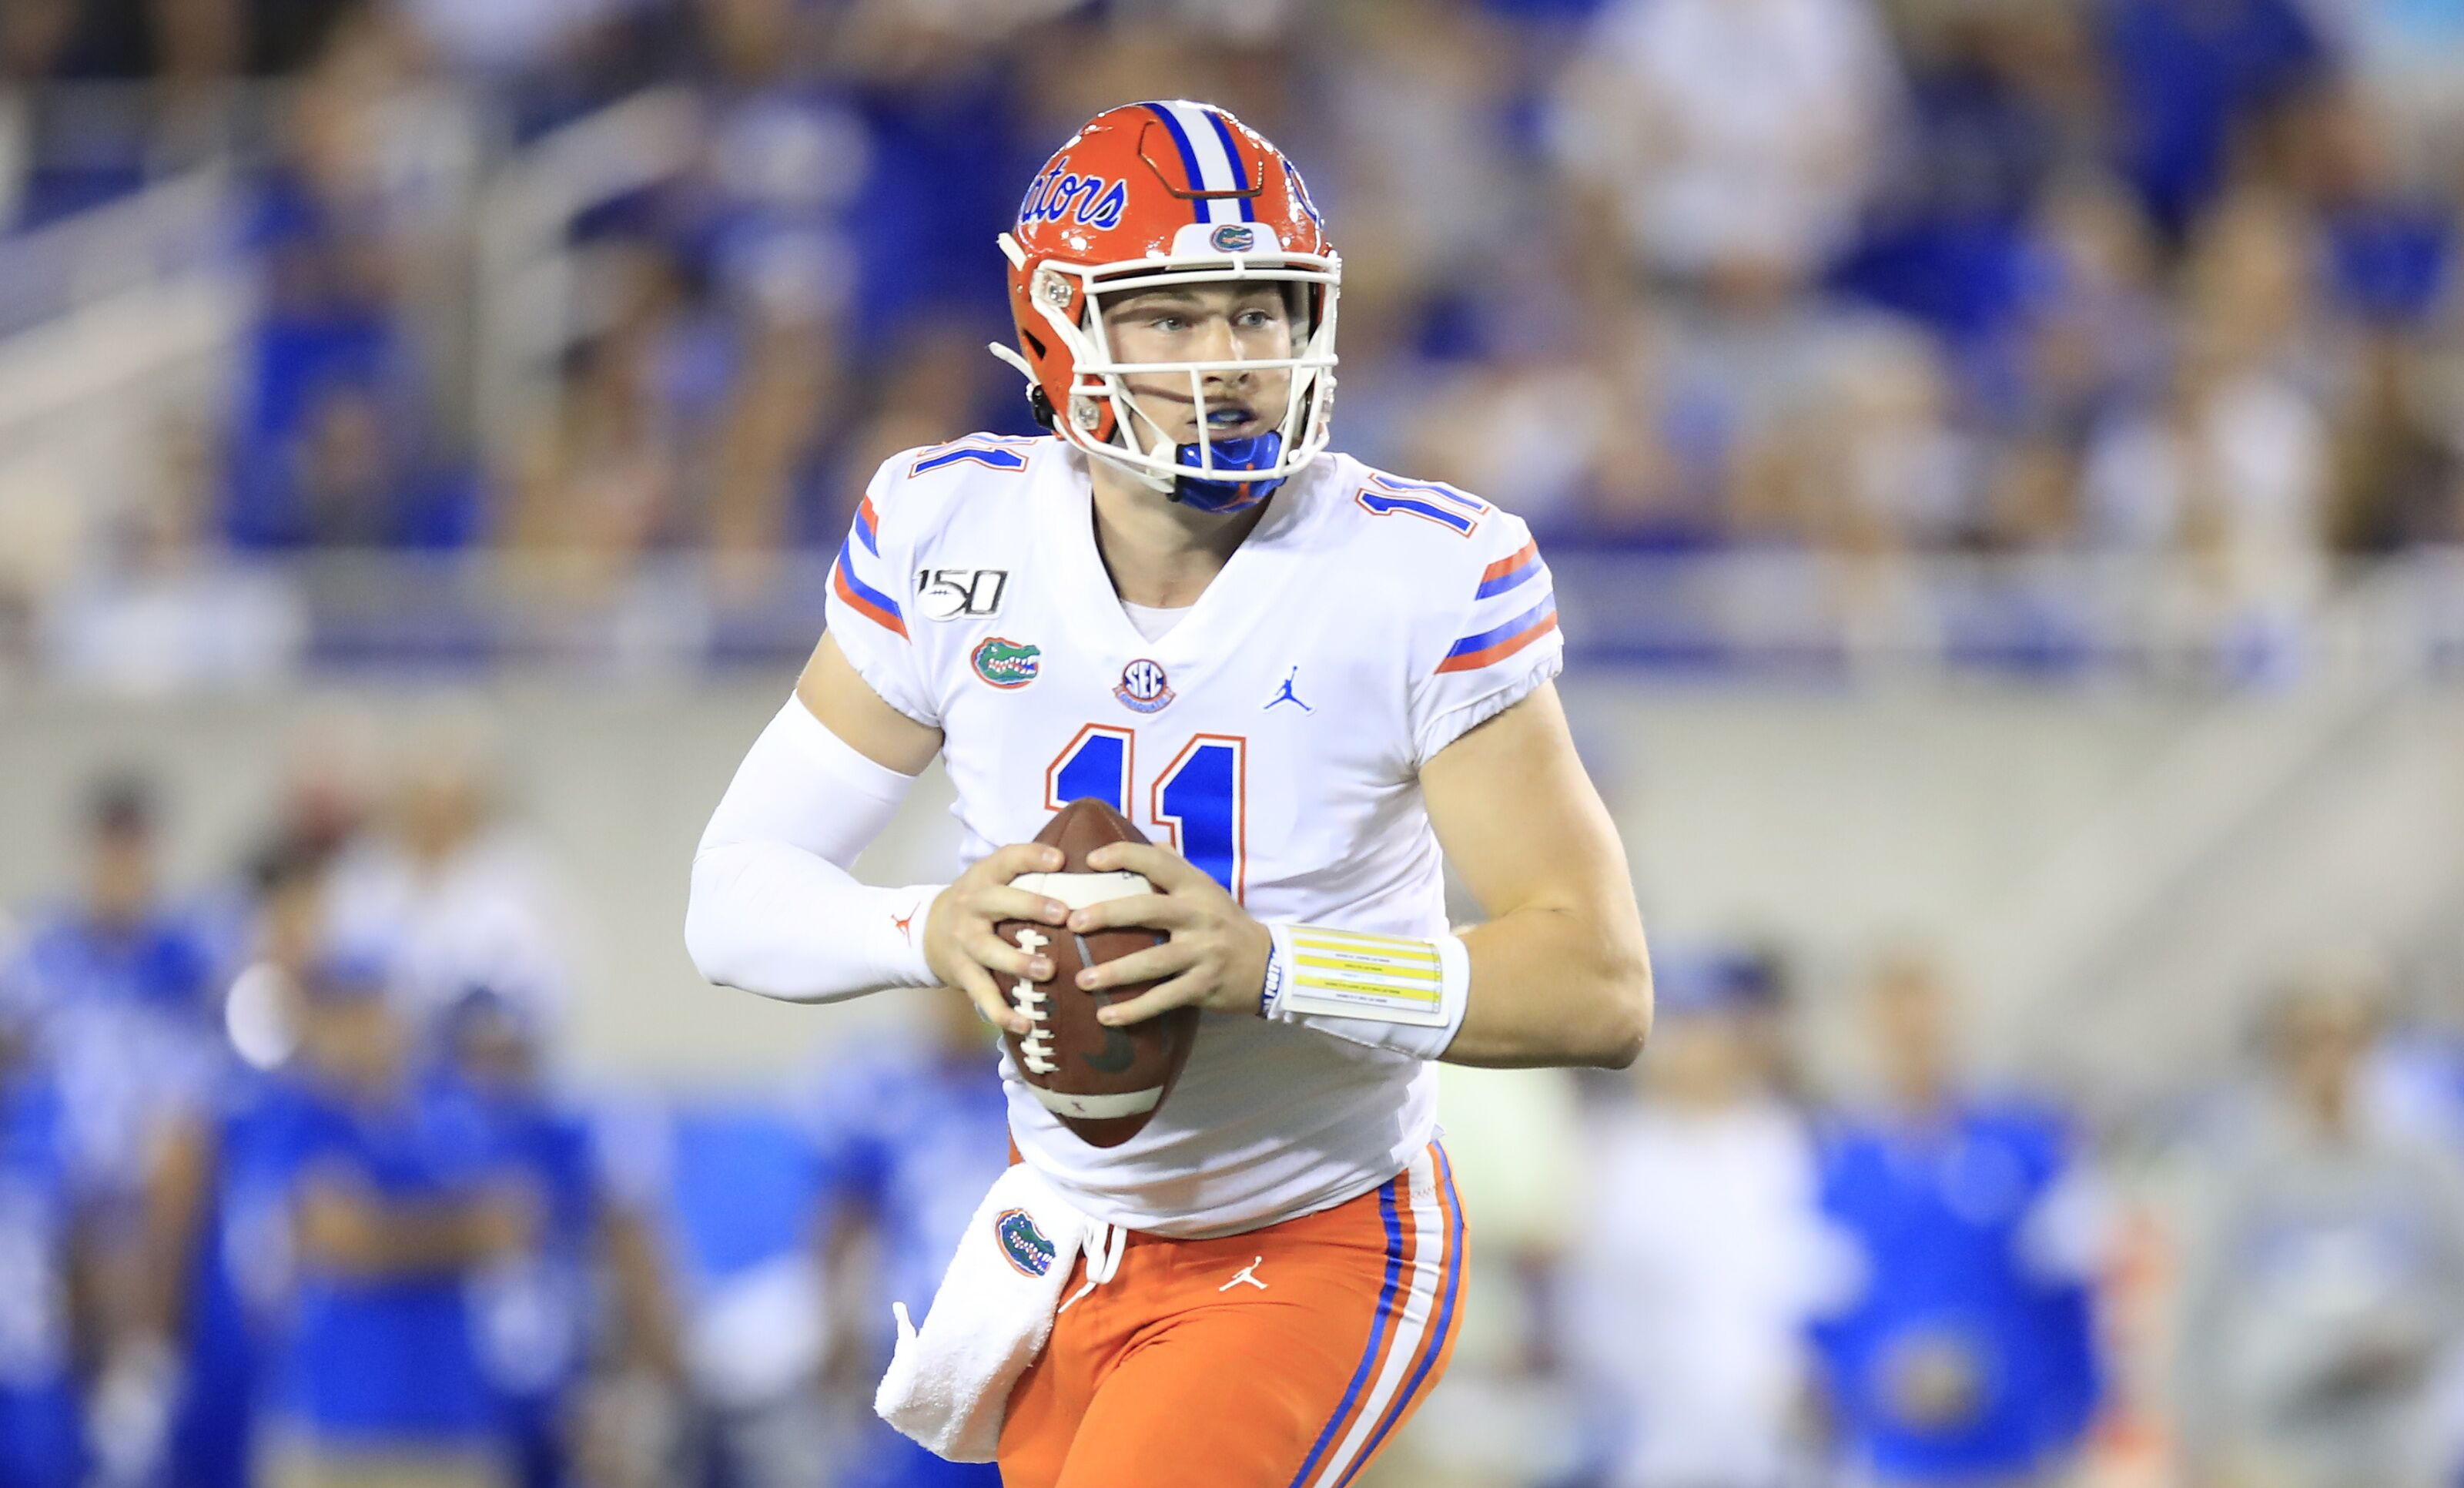 Florida football: Can the Gators stay undefeated and beat Tennessee?